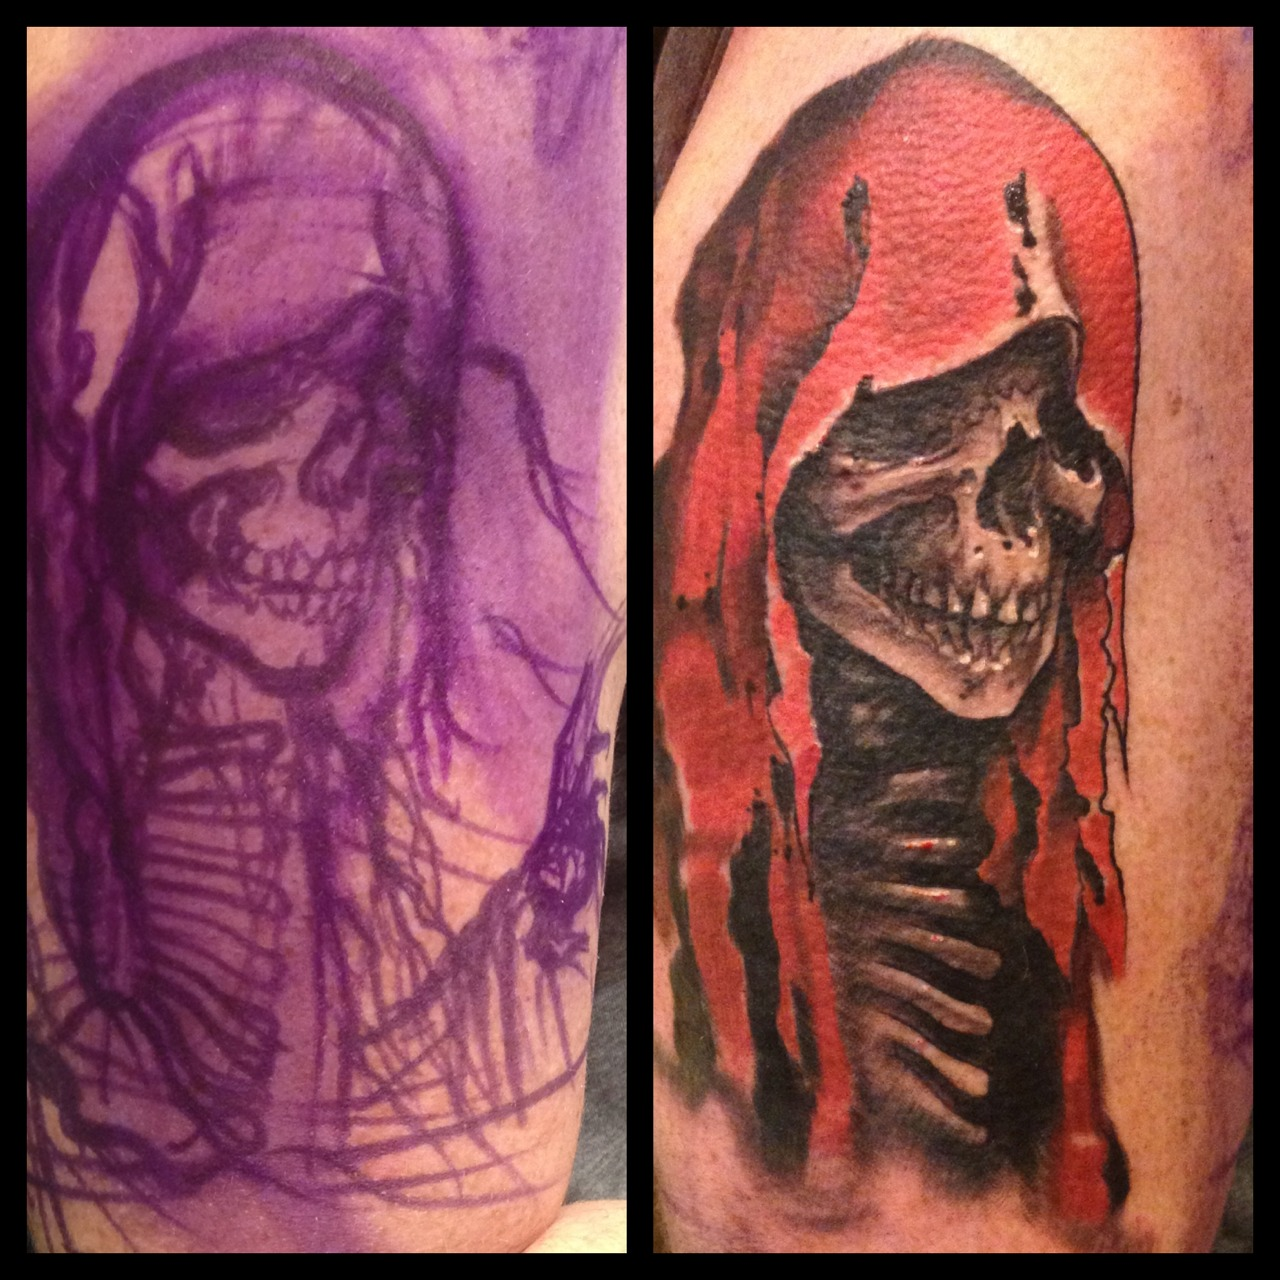 It is a good day when a walk in tattoo turns into an Edgar Allan Poe half sleeve.  We have a little more to add to this mask of the red death before we move on to a collage some other Poe stories.